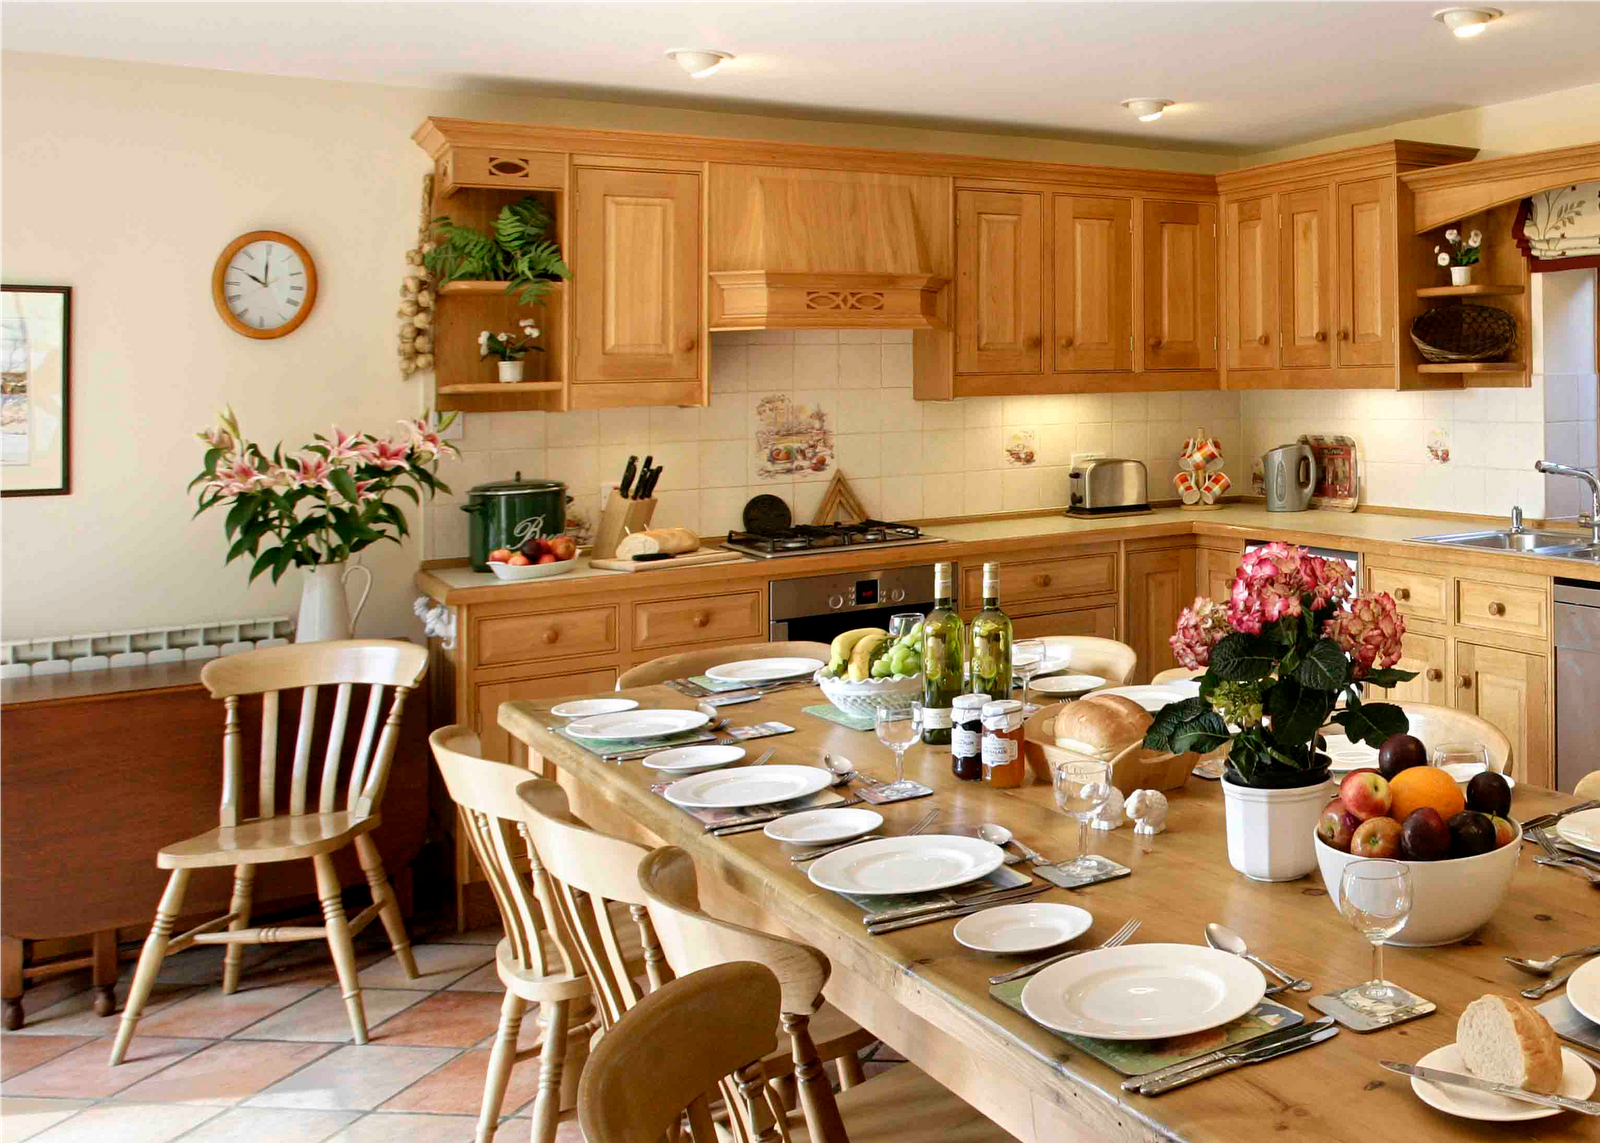 English country kitchen ideas room design ideas for Country kitchen decor